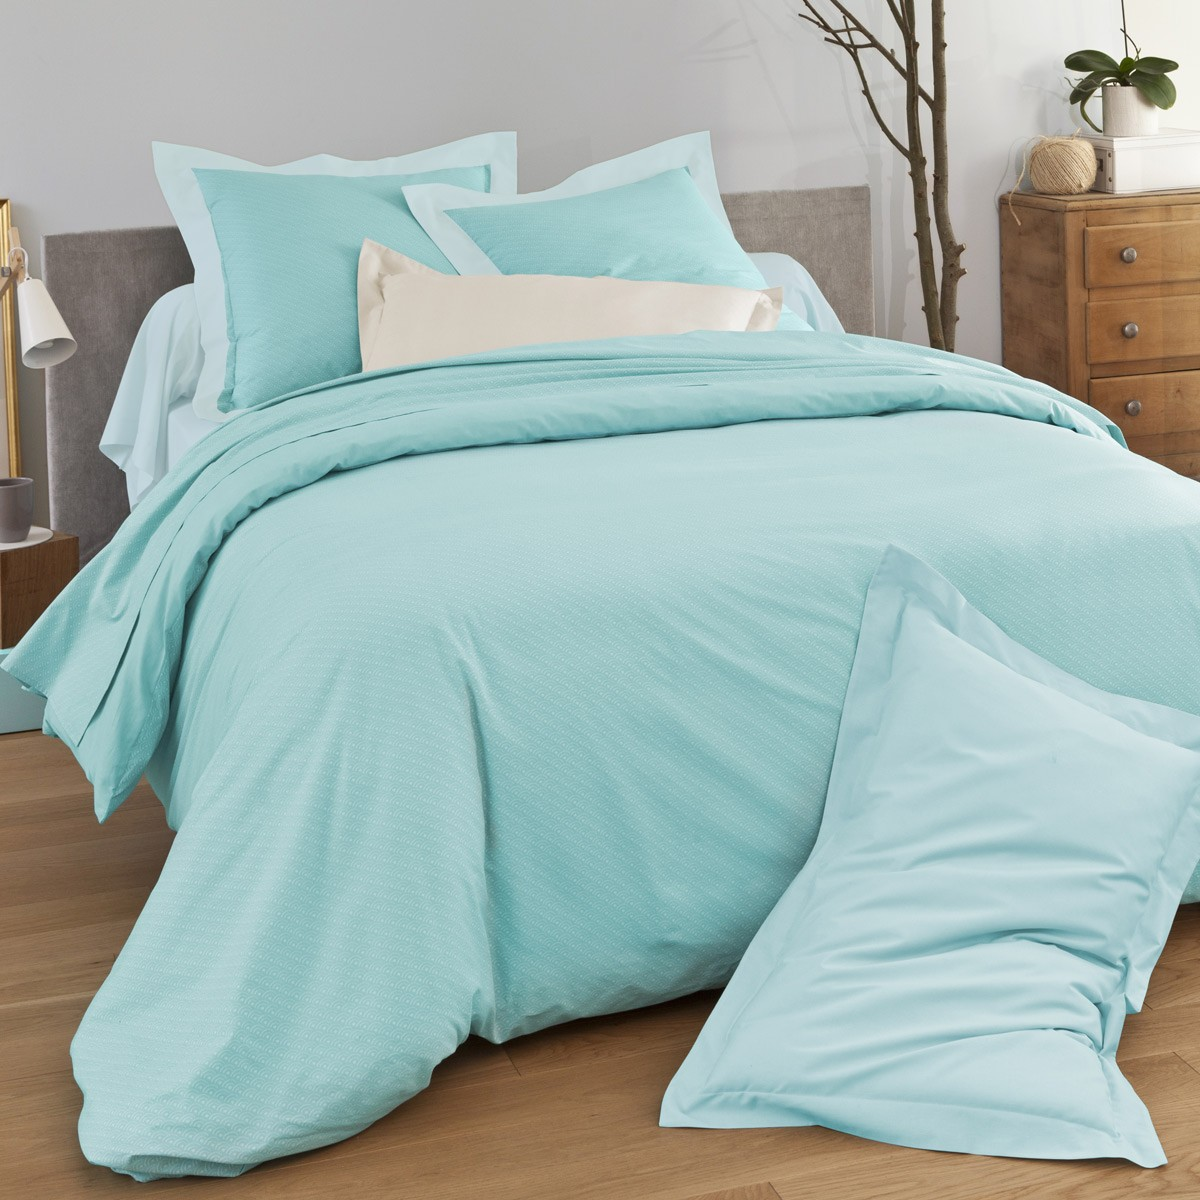 Parure Dream Blue Linge De Lit De Qualit Tradition